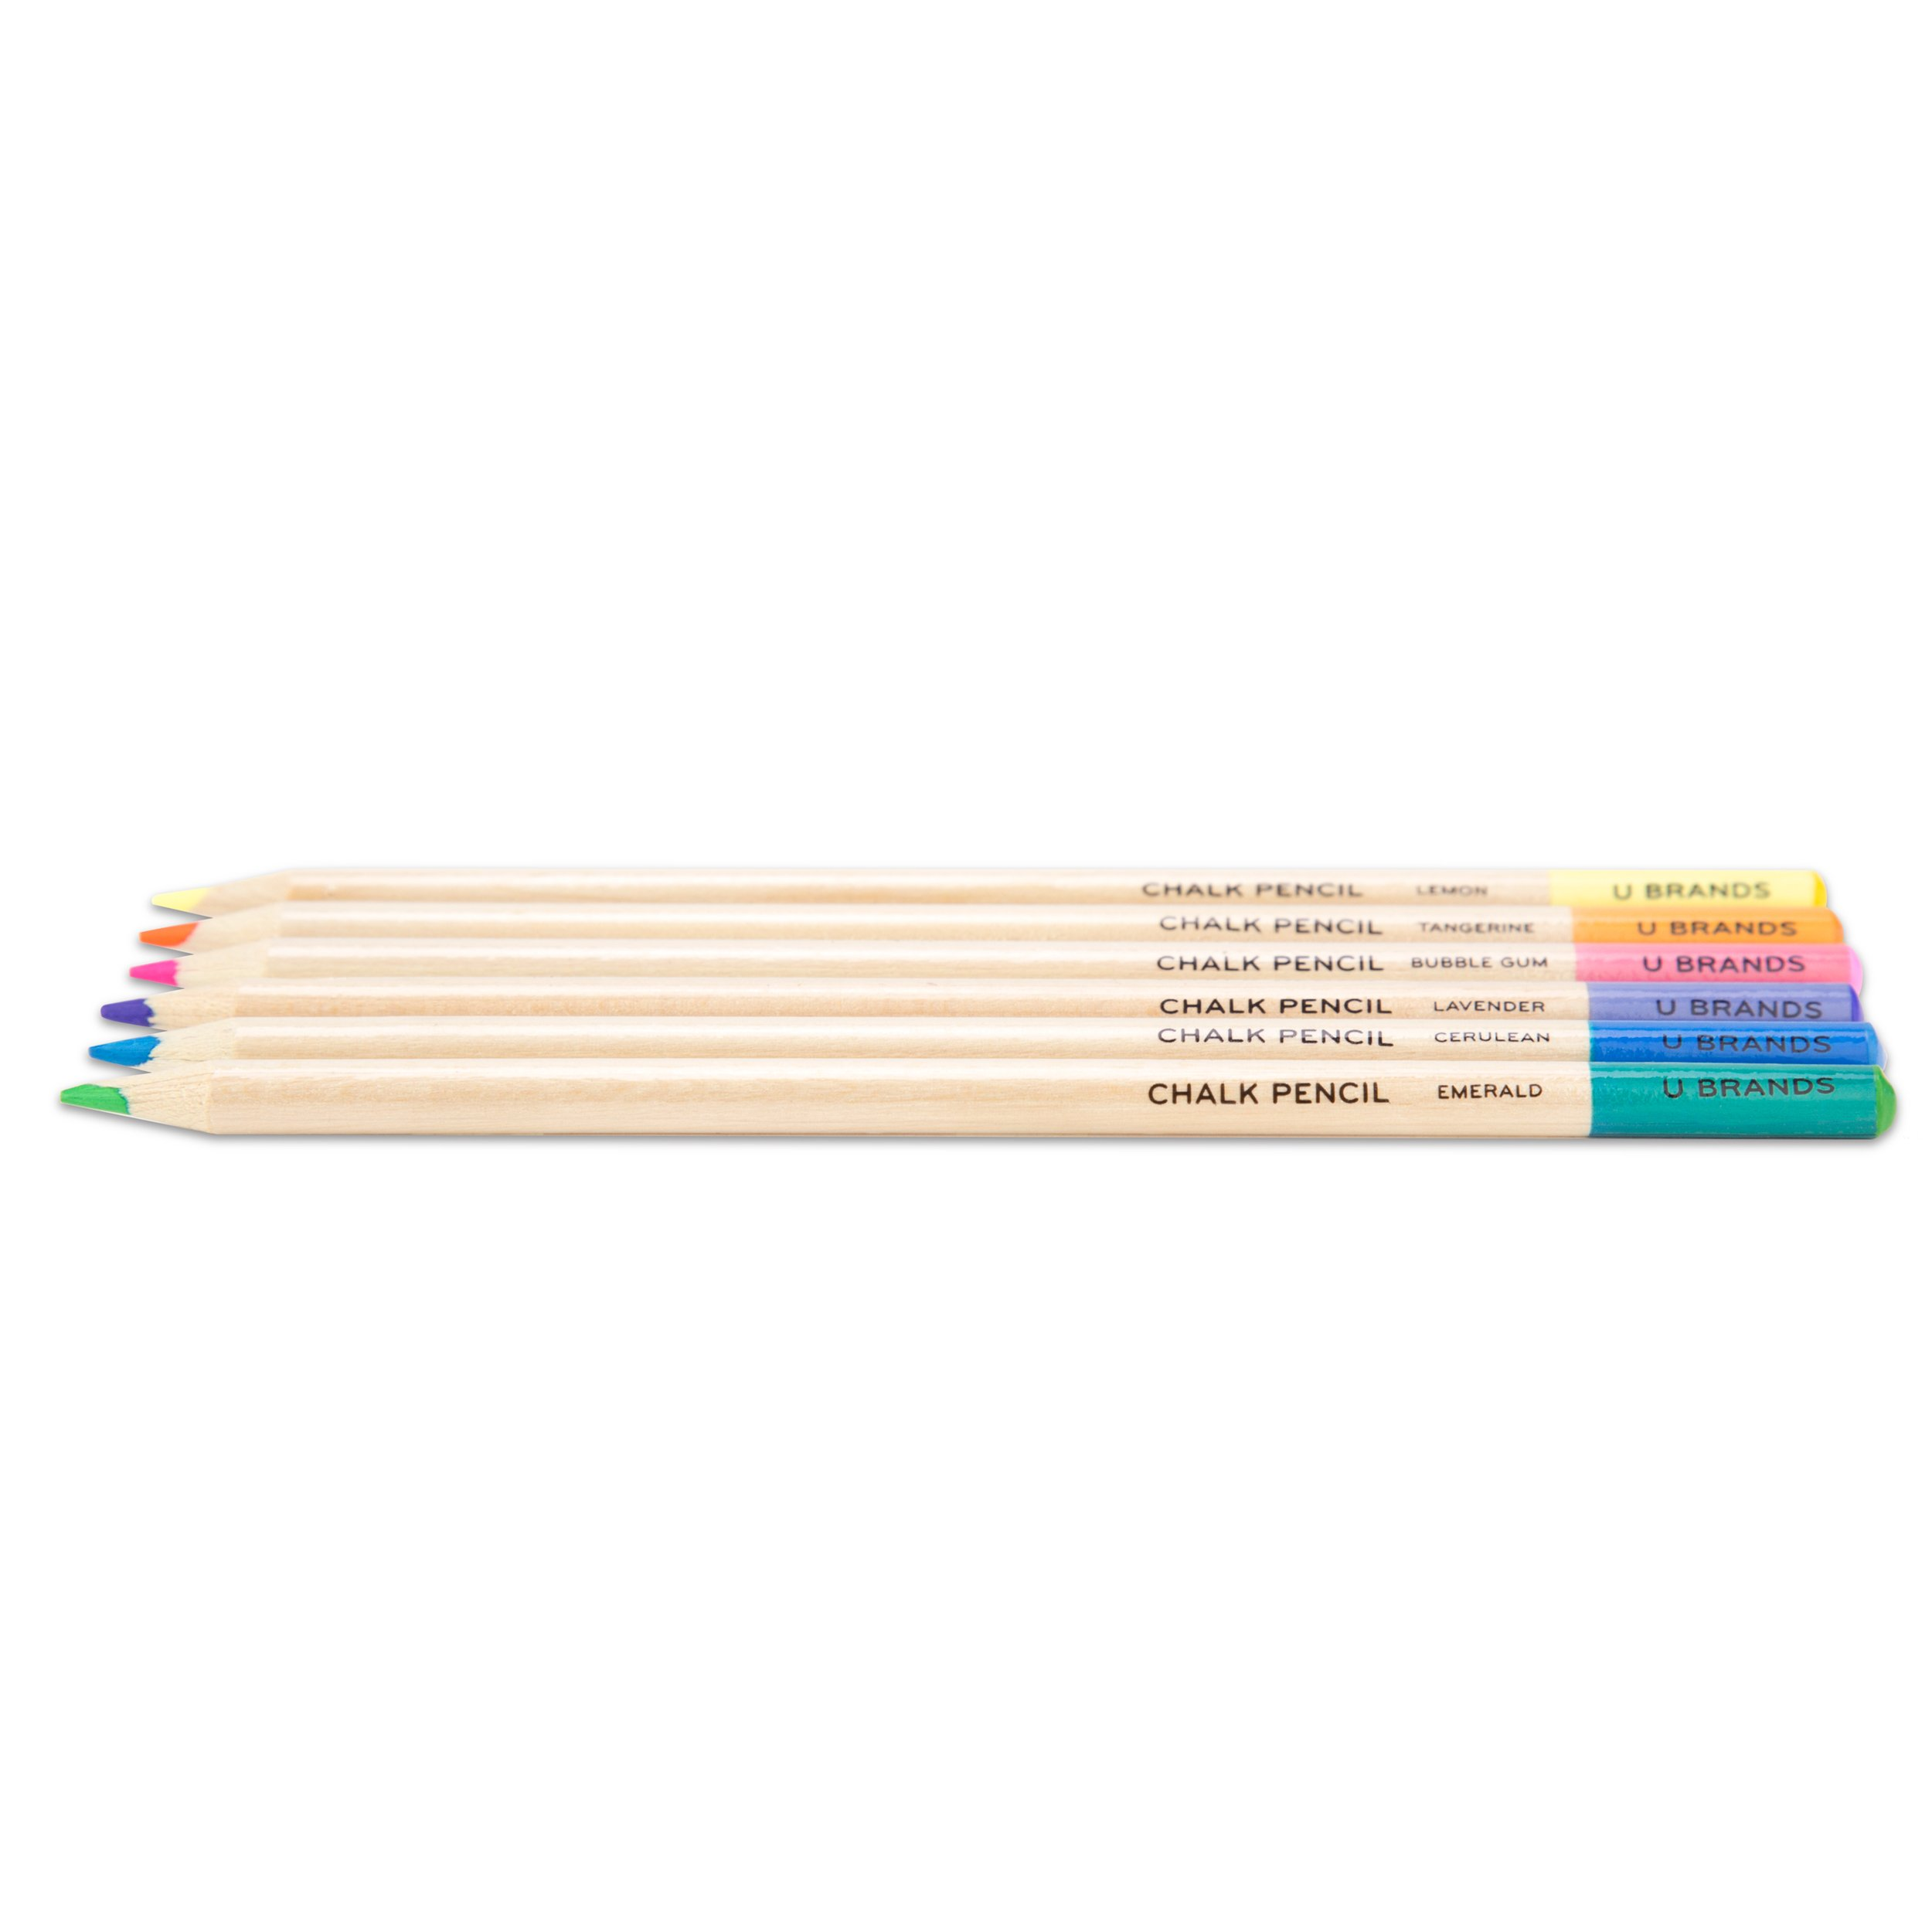 U Brands Chalkboard Colored Pencils, Assorted Colors, 6-Count by U Brands (Image #2)